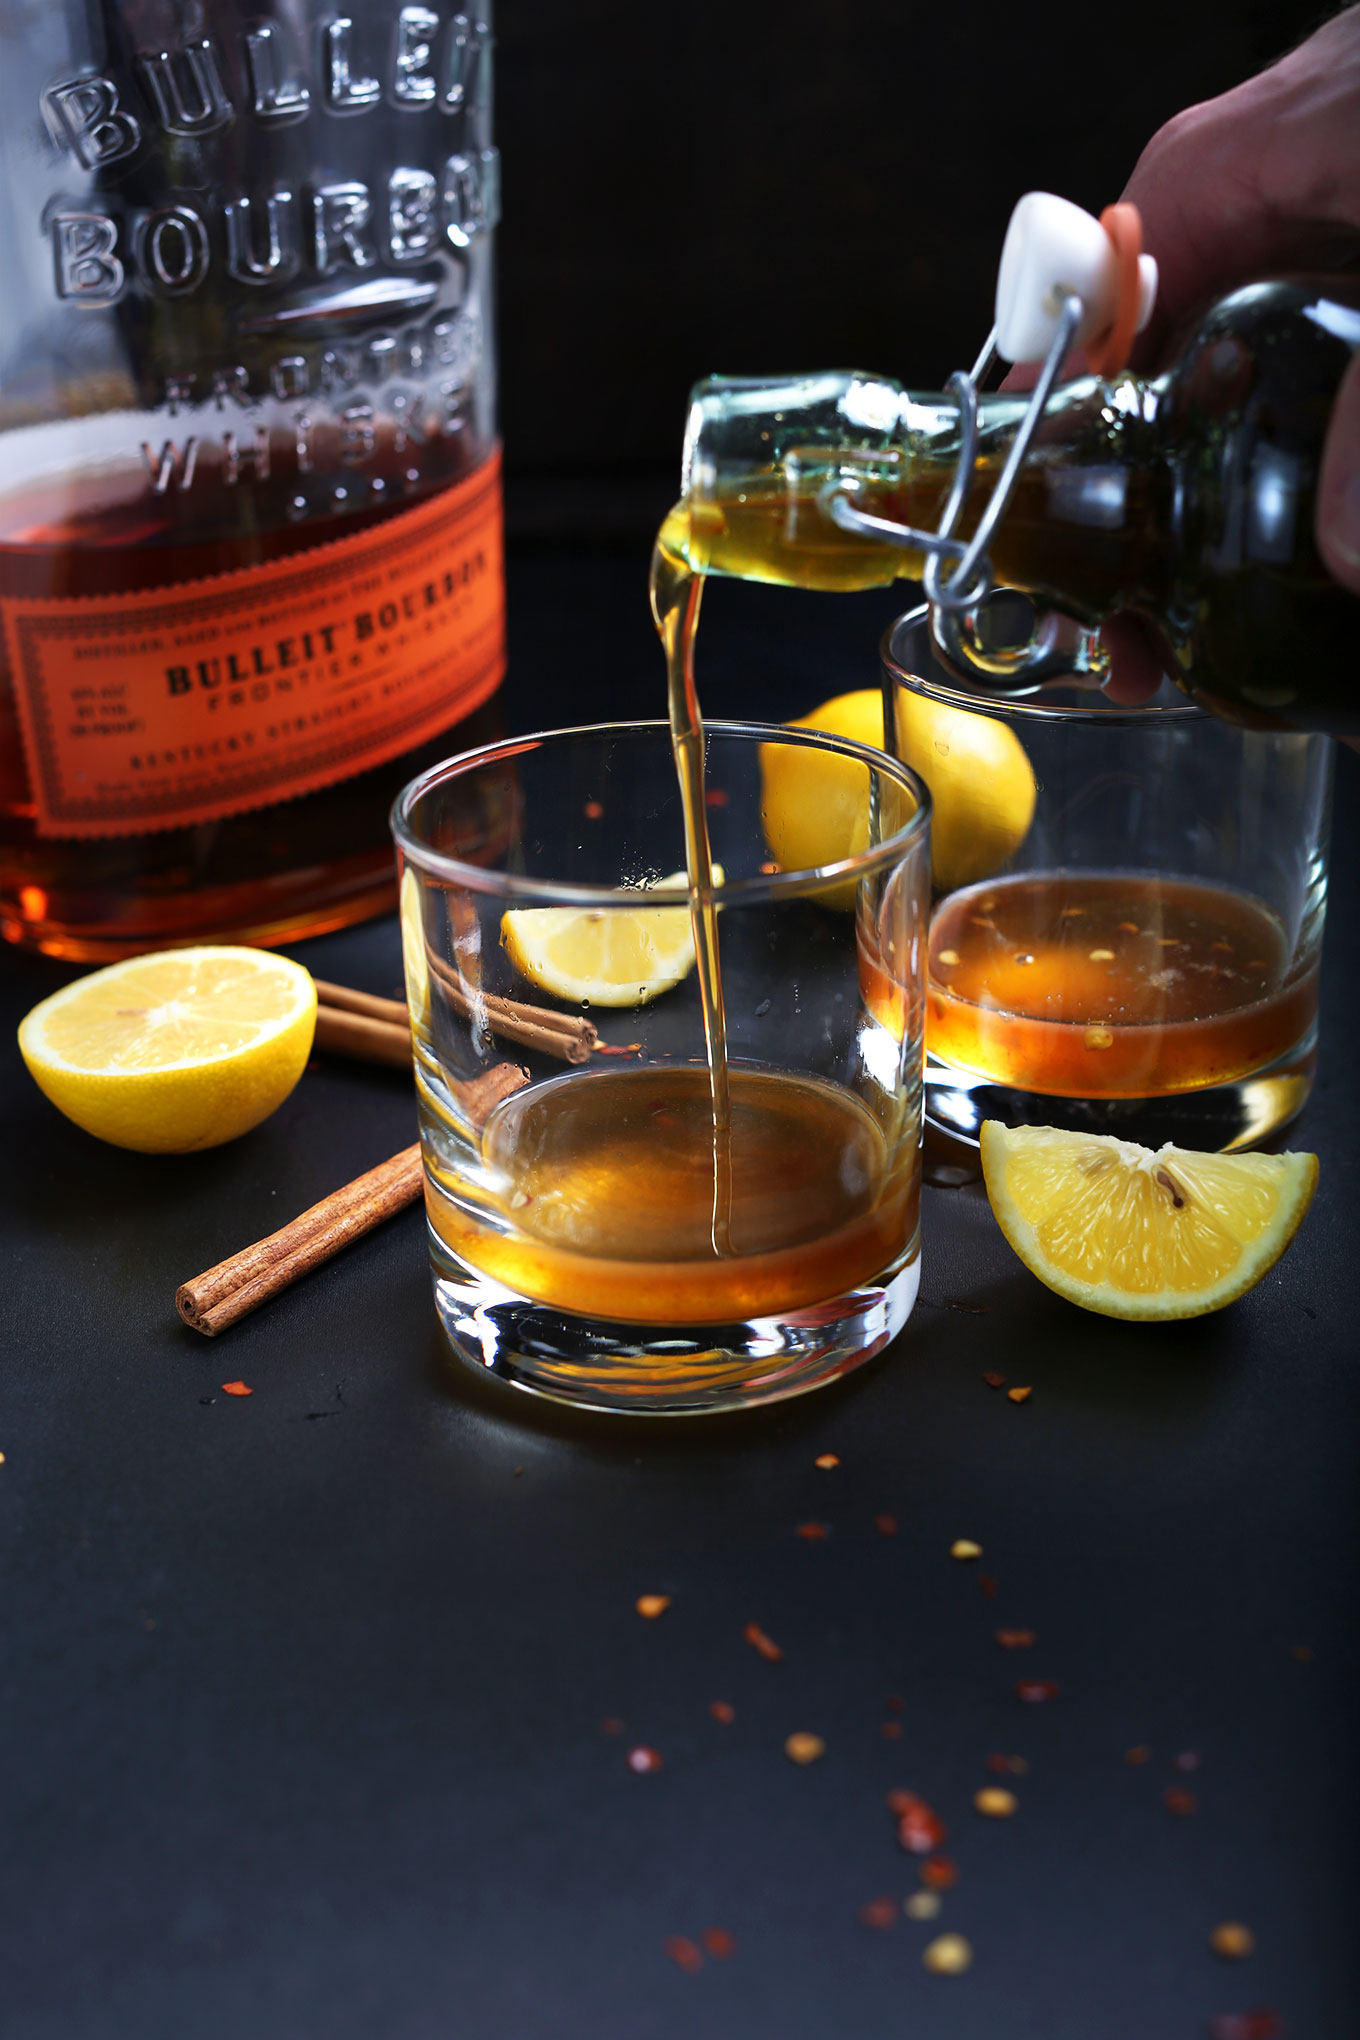 Pouring Chili-Infused Maple Simple Syrup into a glass to make Cinnamon Bourbon Hot Toddys